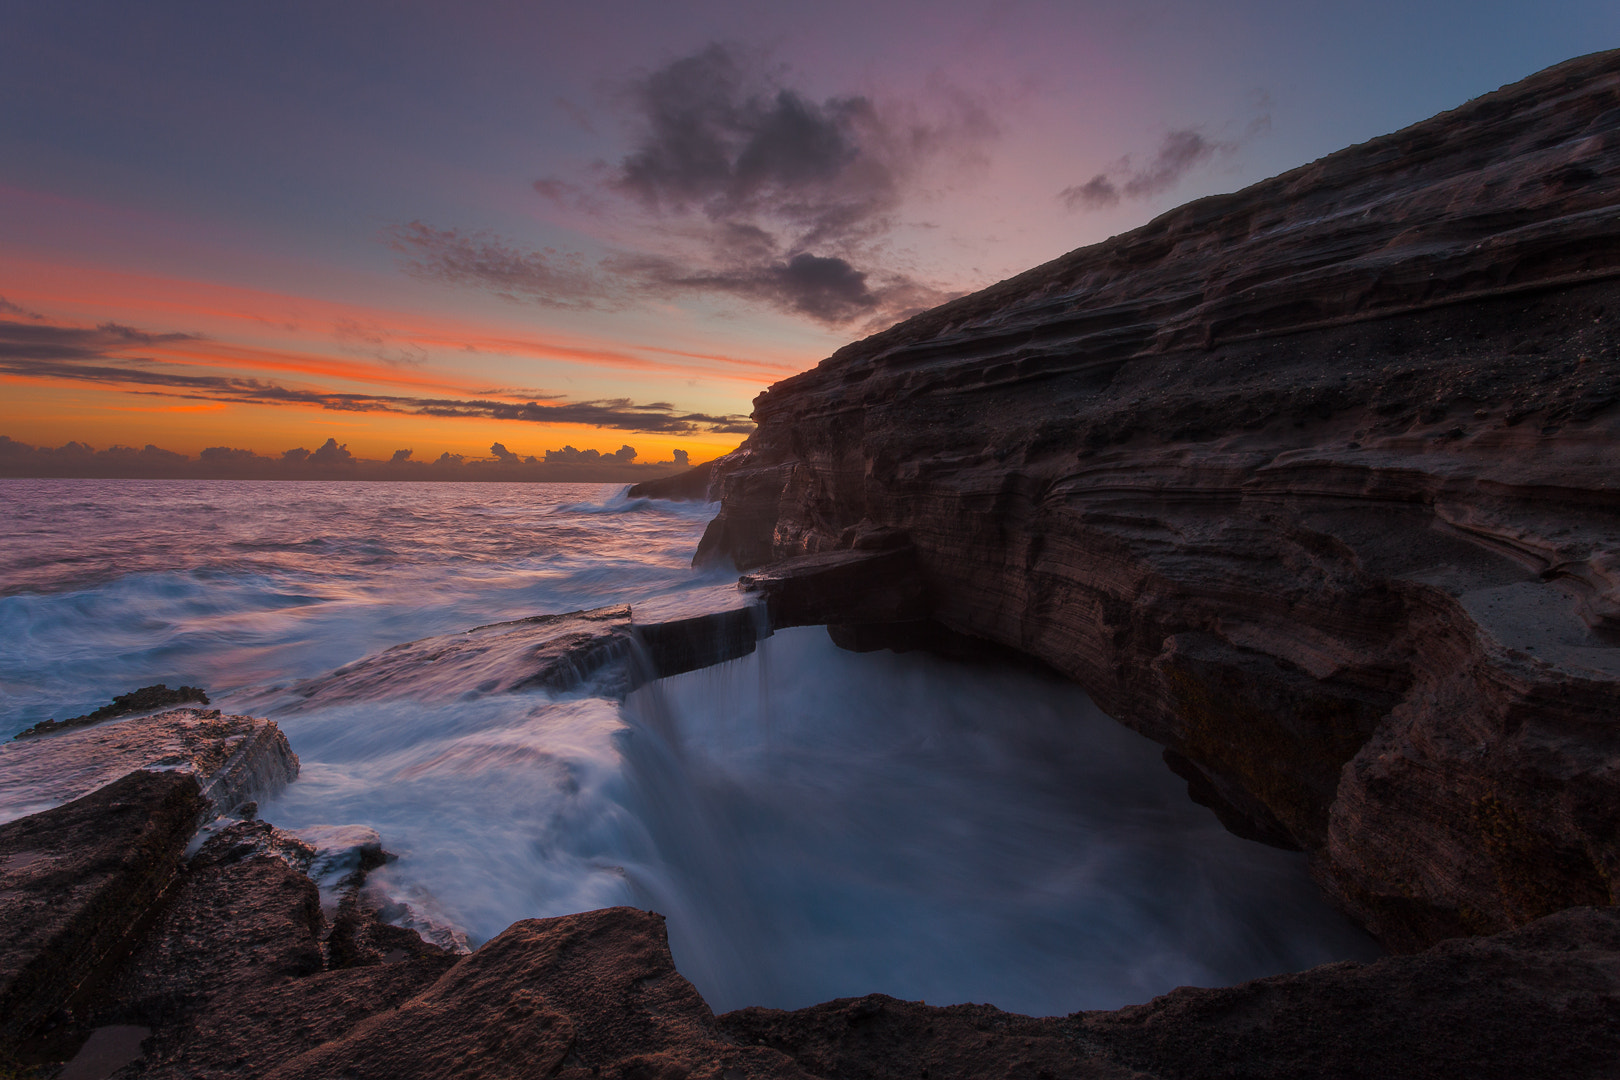 Photograph The Fable Oahu Rock Bridge (Dusk Edition) by Raymond De Bui on 500px